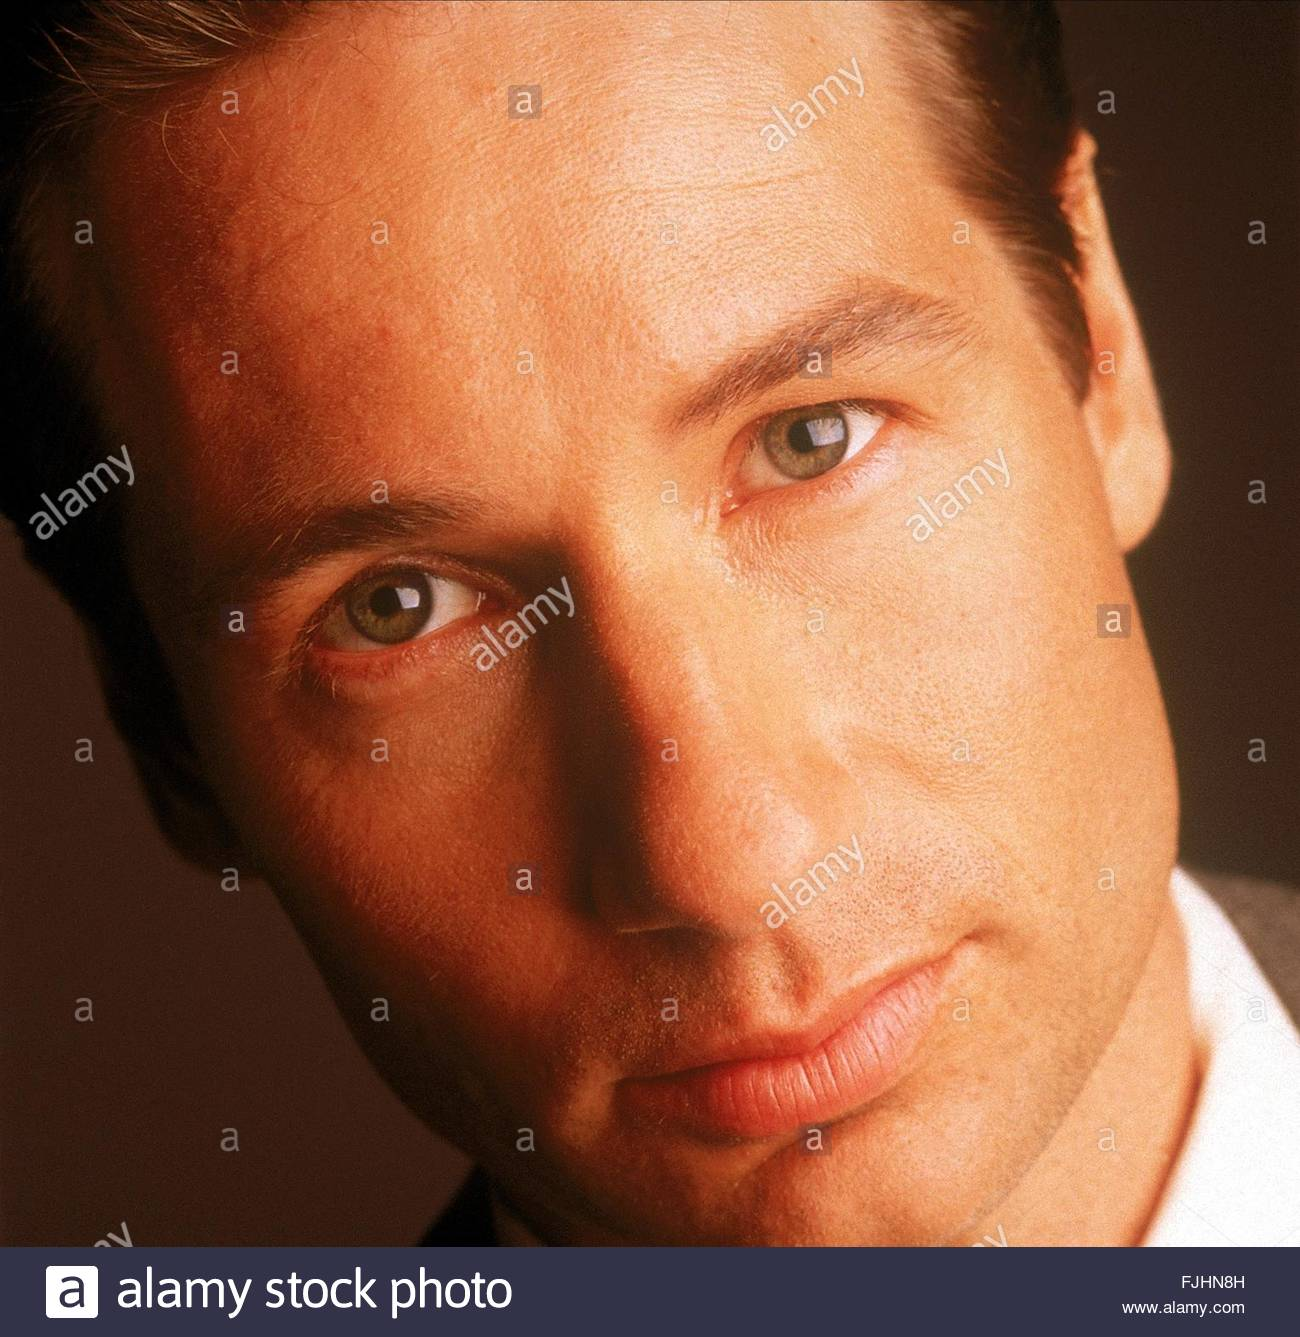 DAVID DUCHOVNY THE X FILES (1993) - Stock Image